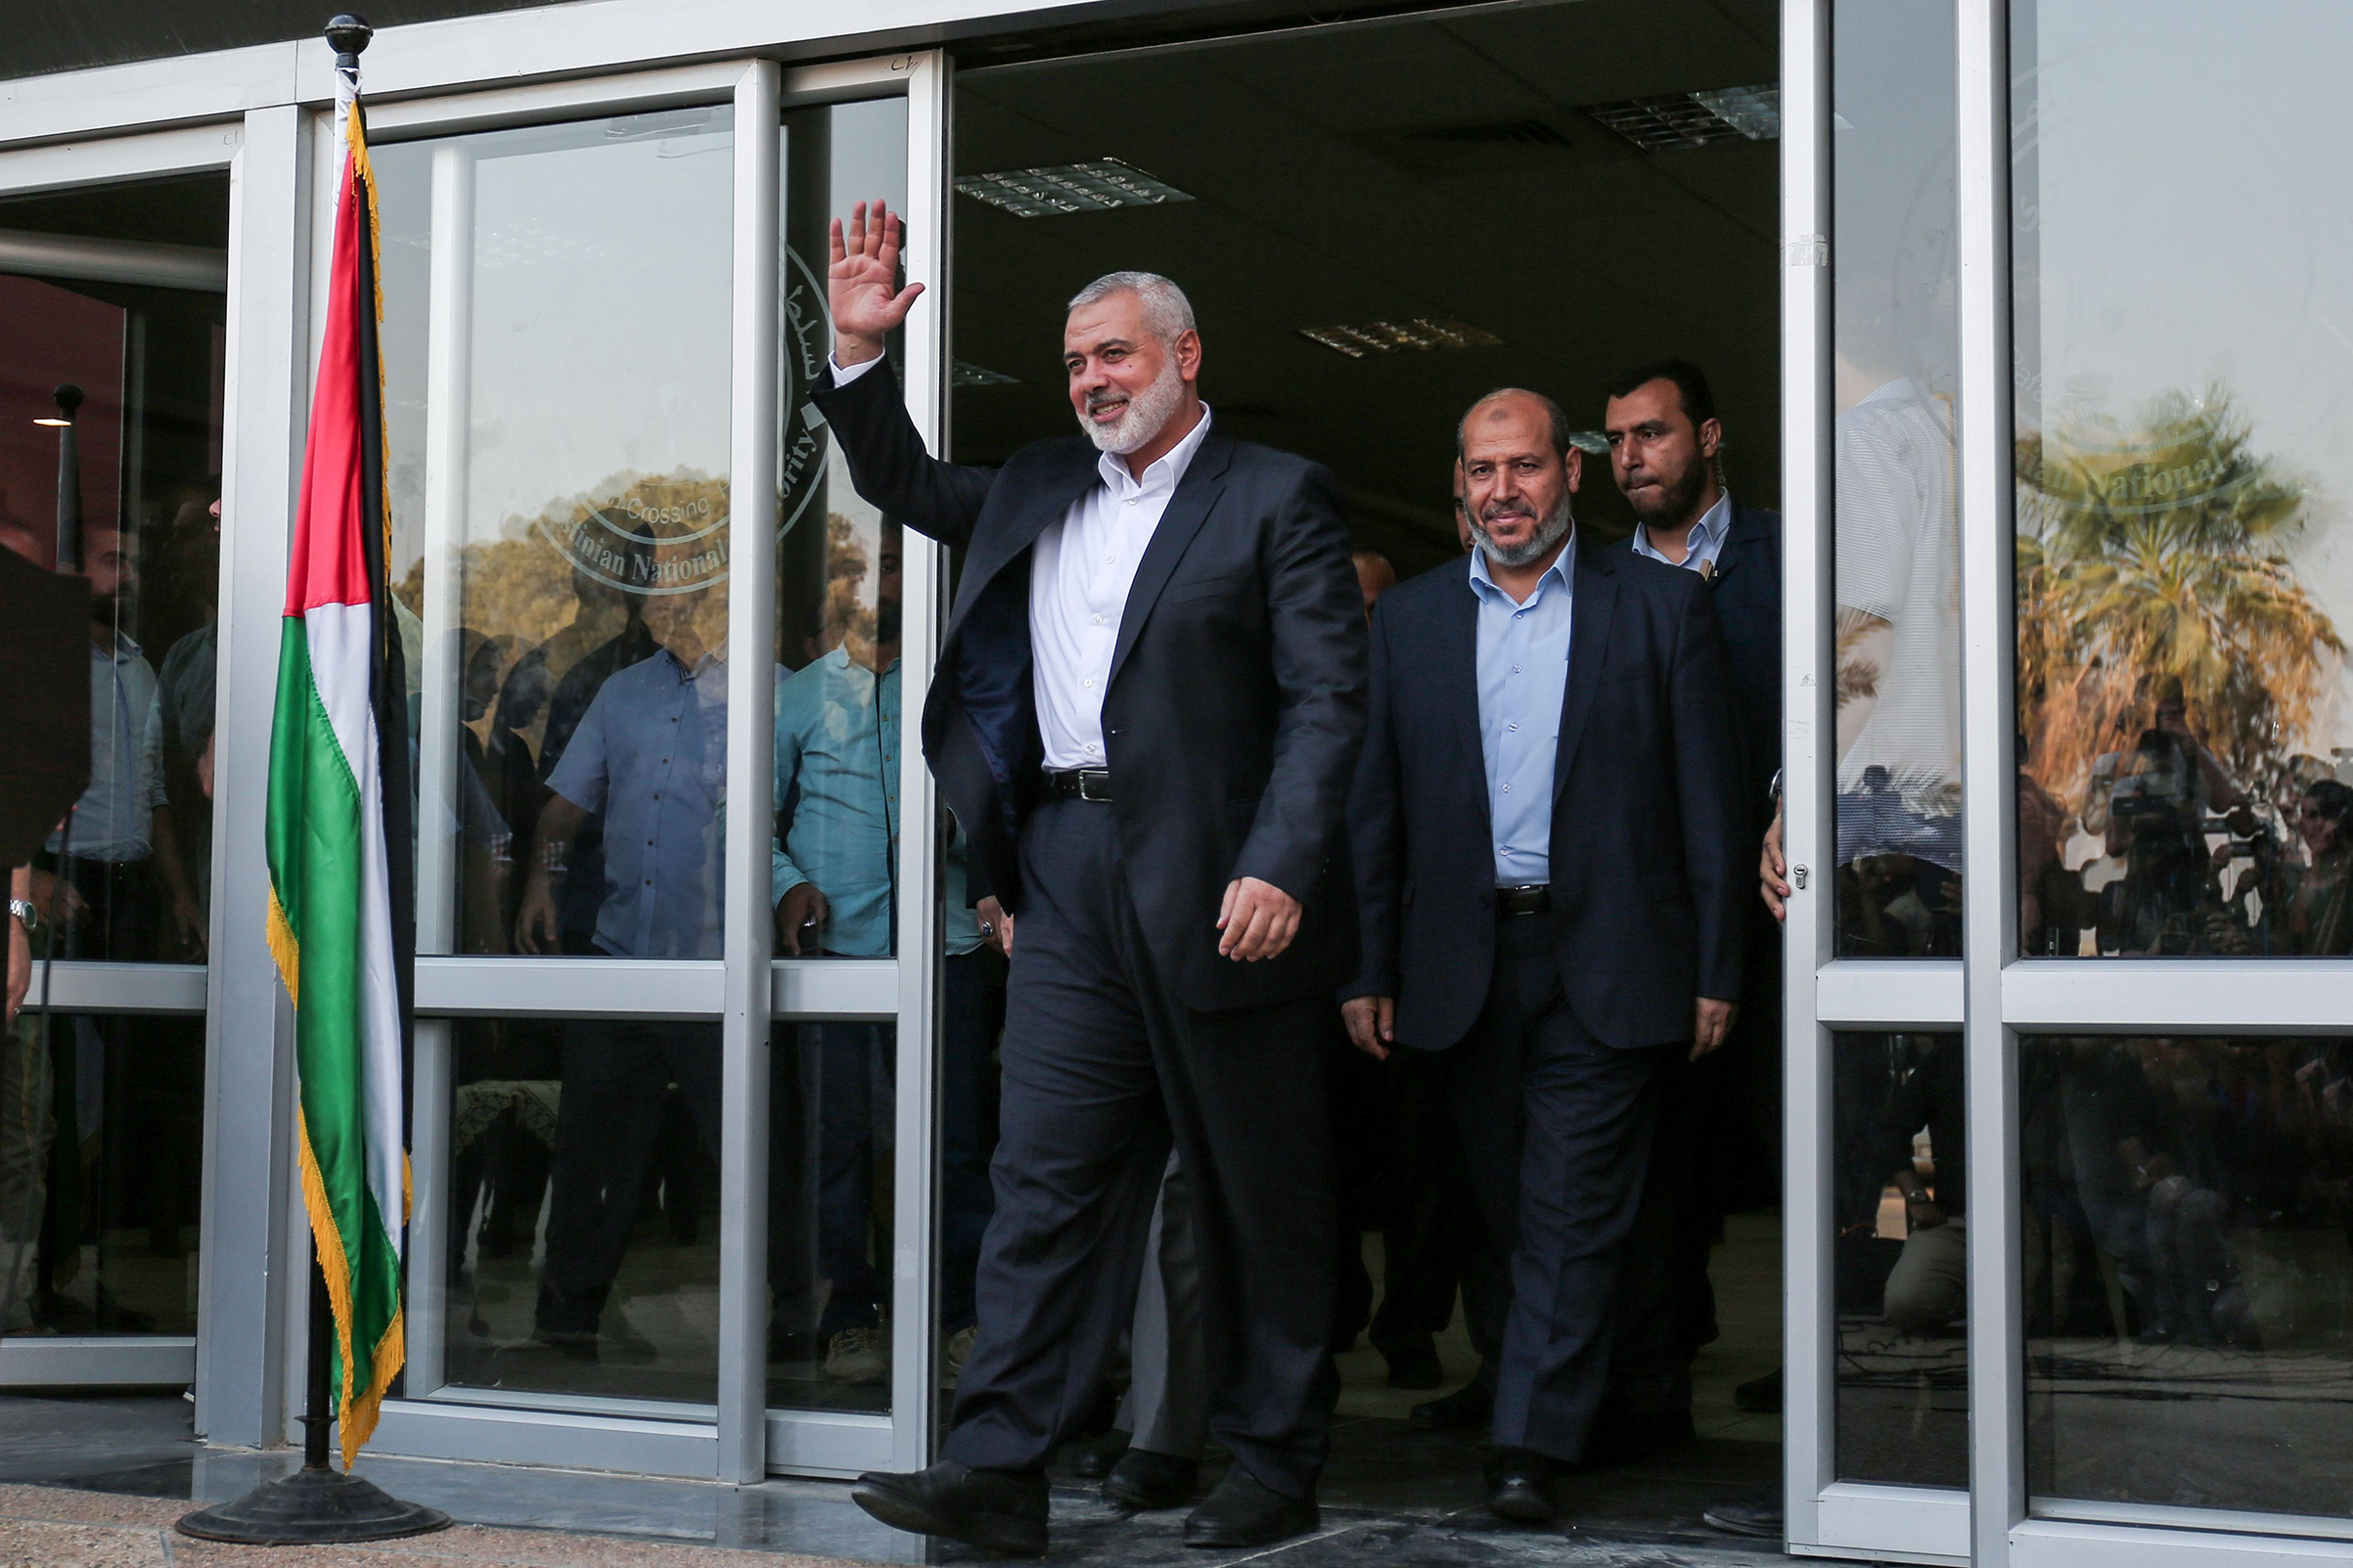 Hamas elected Ismail Haniyeh leader in May.